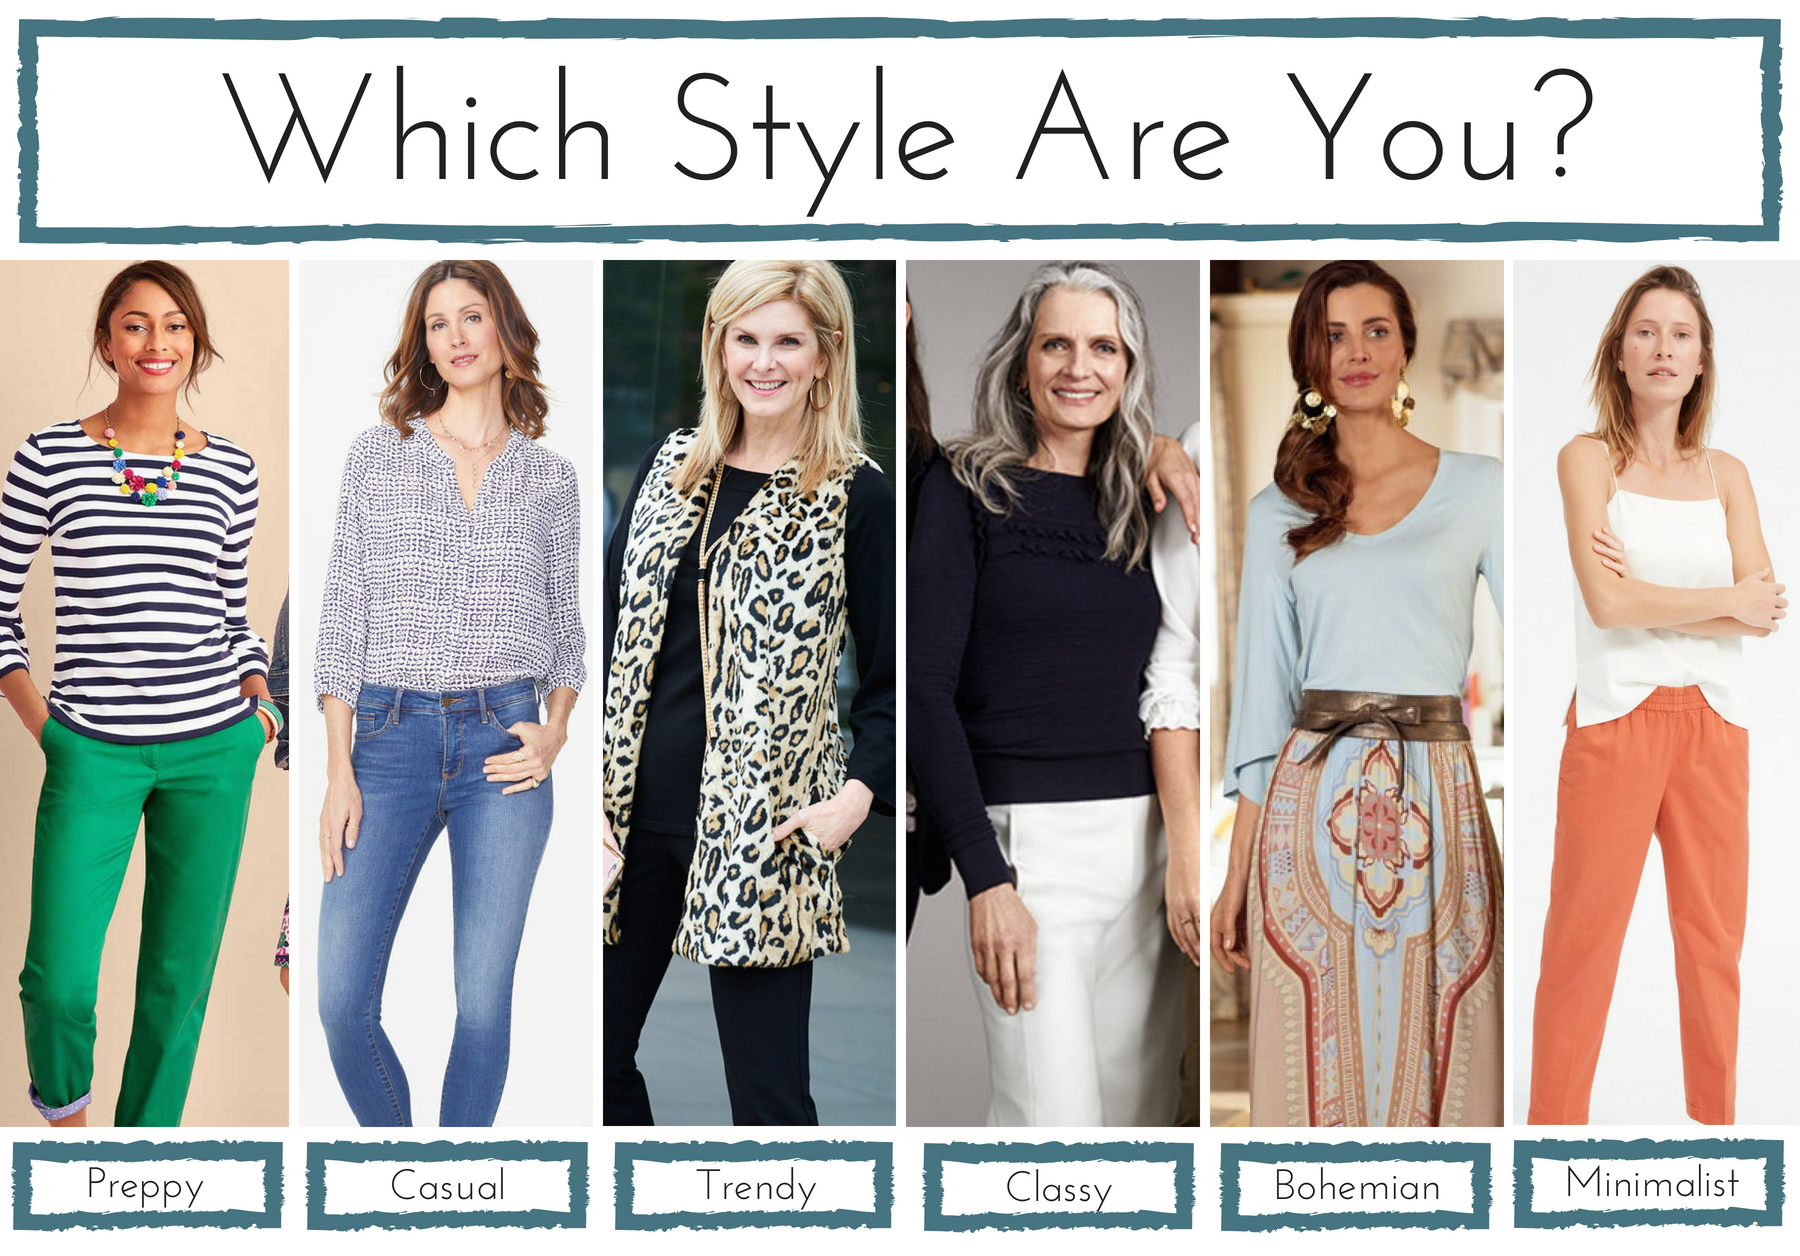 Women's Clothing Over 50 Styles